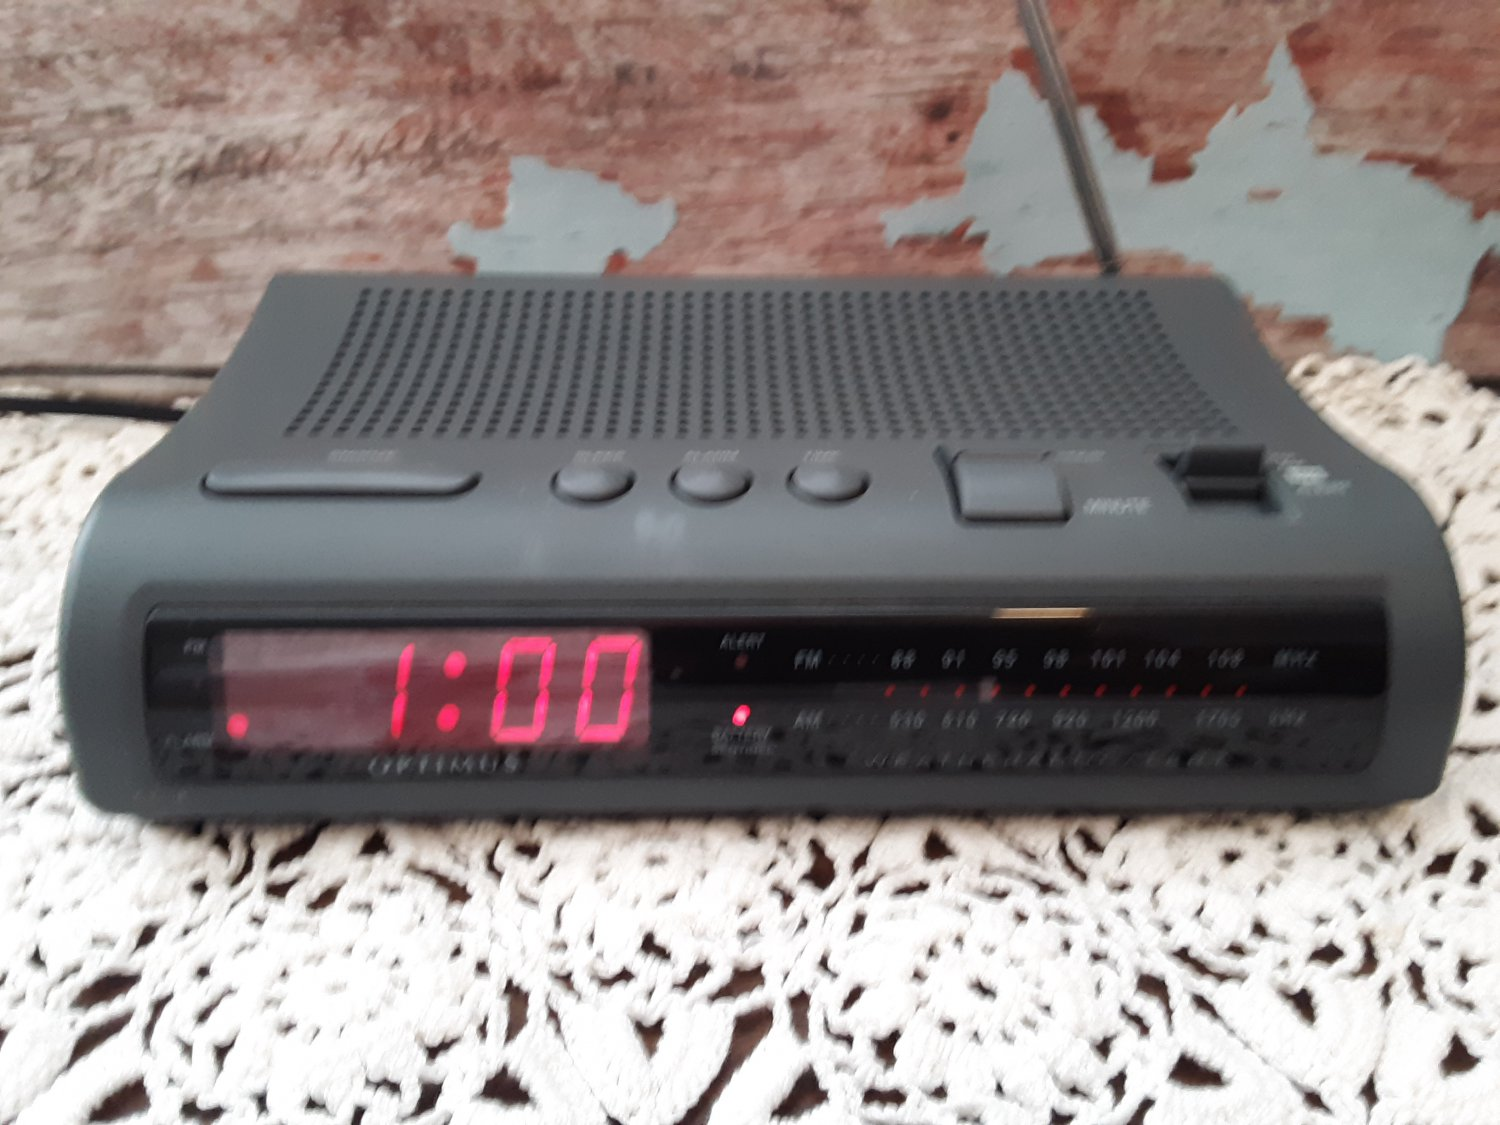 Optimus AM/FM Alarm Clock Radio with Weather And Emergency Band Alert's